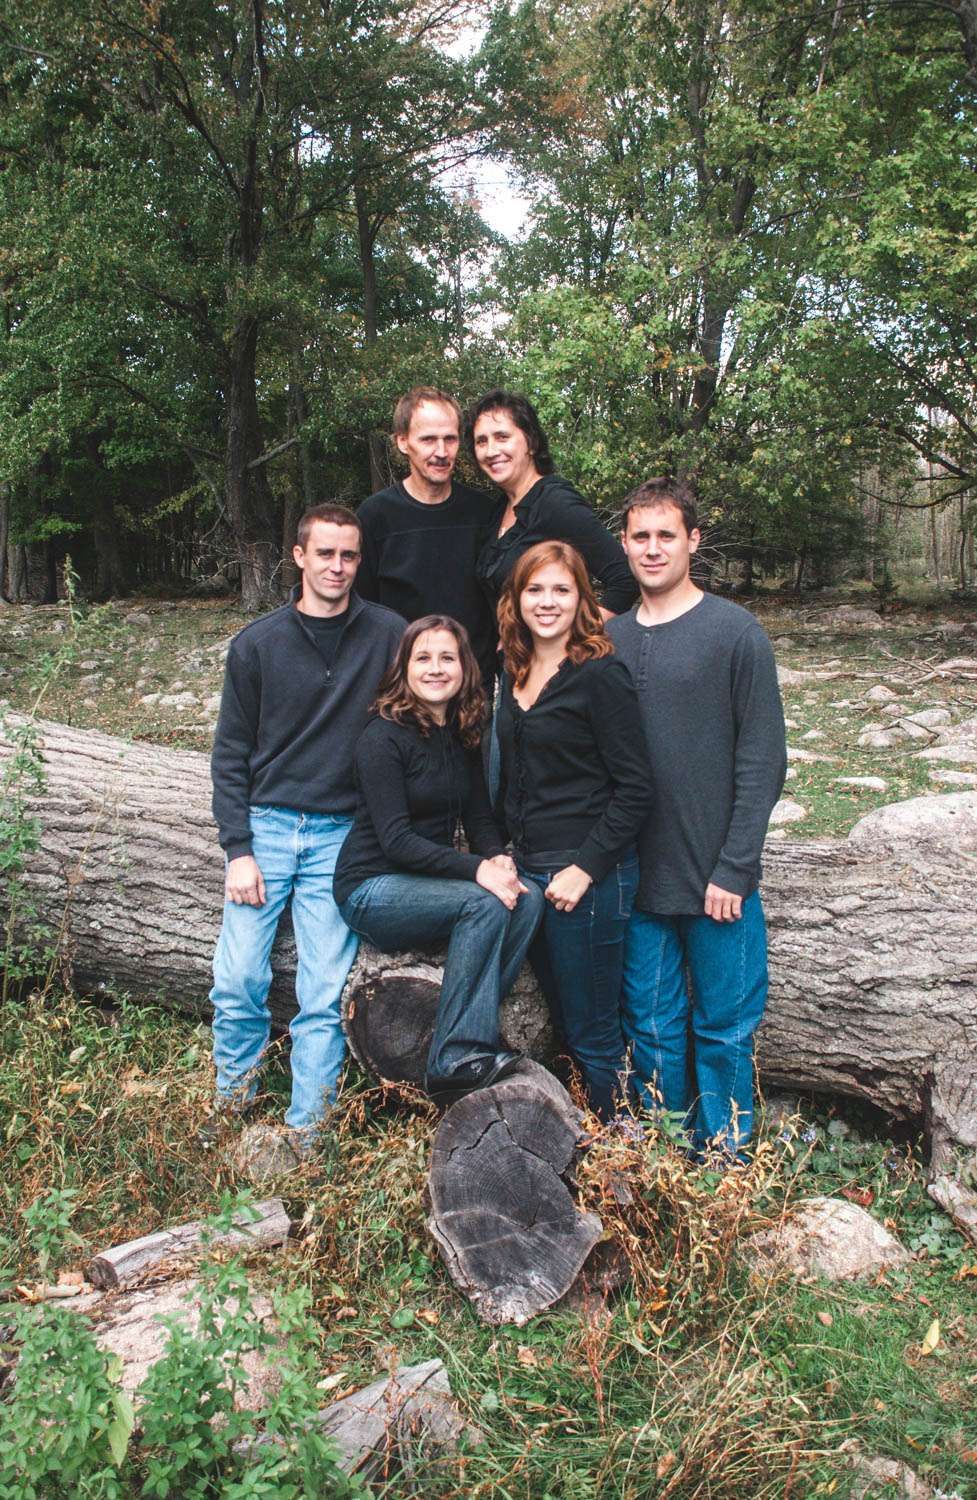 Rustic family portraits in Wisconsin